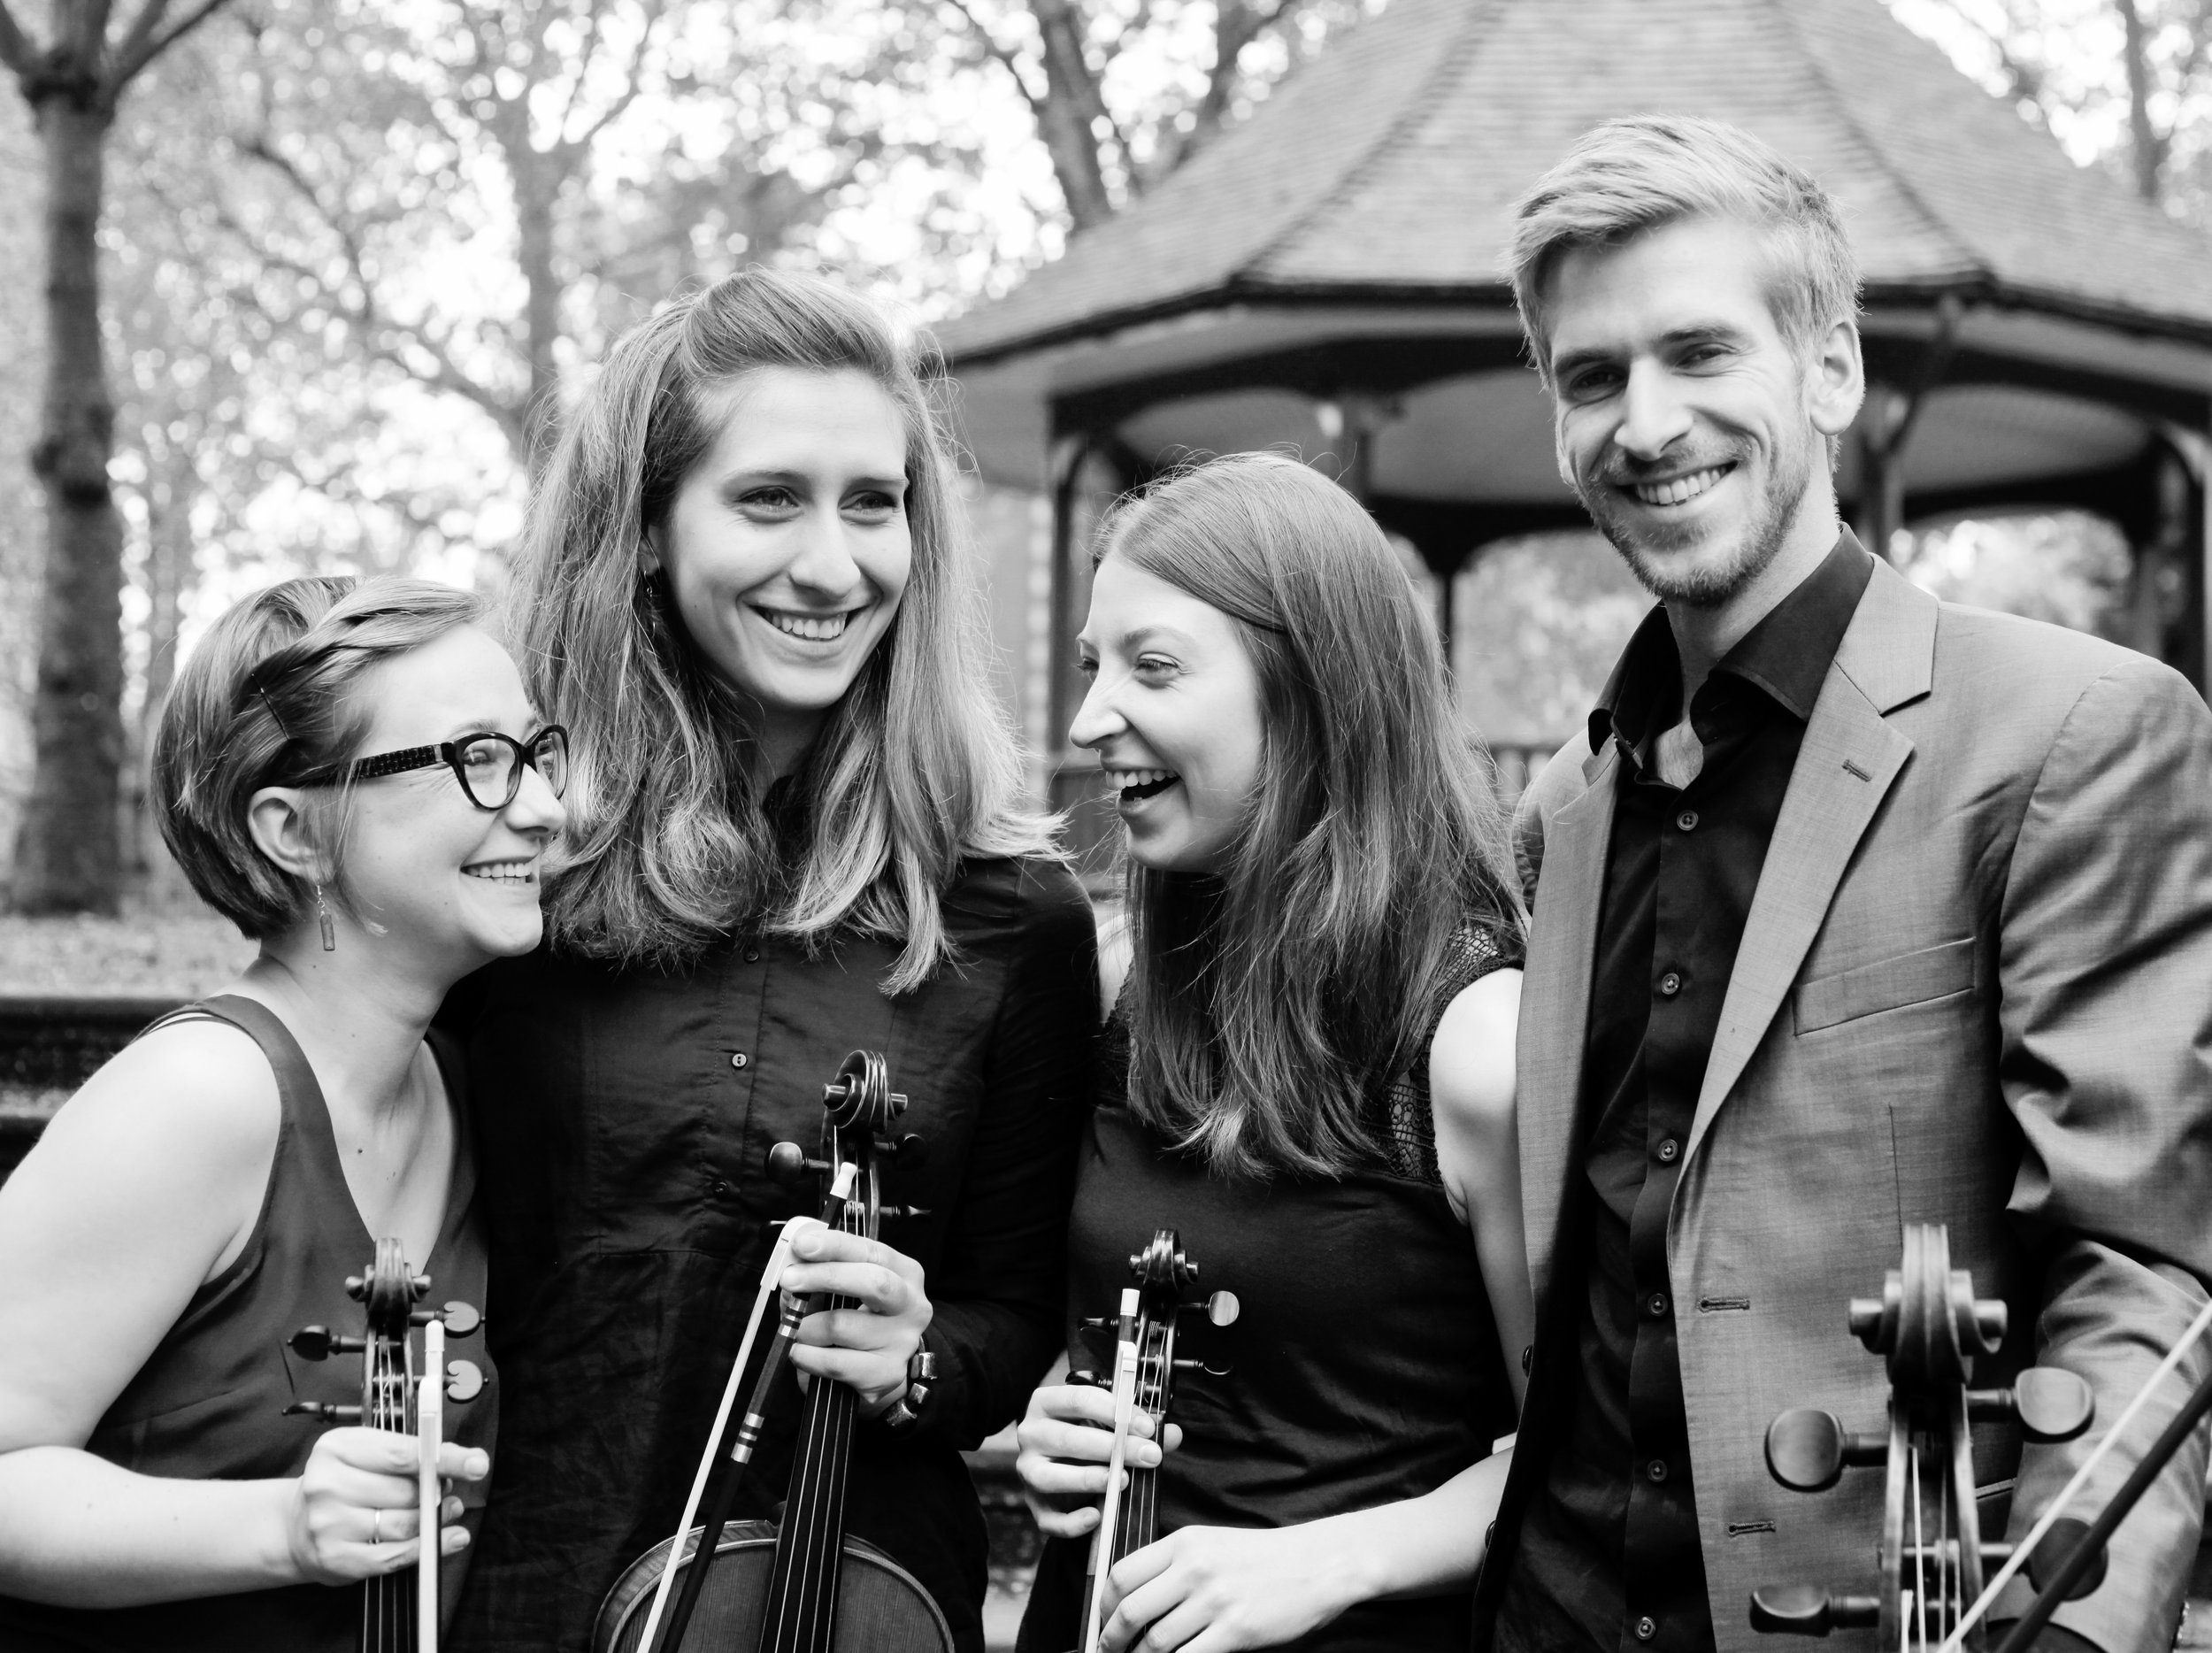 BIOGRAPHY - Formed at the Royal College of Music in London, the Consone Quartet is dedicated to exploring Classical and Early Romantic repertoire on period instruments.Winner of the 2016 Royal Over-Seas League Ensemble Prize in London, Consone was also awarded two prizes at the 2015 York Early Music International Young Artists Competition, including a place on the 'EEEmerging' Emerging European Ensembles Scheme associated with the Ambronay Festival in France and six other early music festivals across Europe.The Consone Quartet's debut CD, featuring music by Haydn and Mendelssohn, will be released on the Ambronay Label during the Festival in October 2018.Full biographies are available in: EN | FR